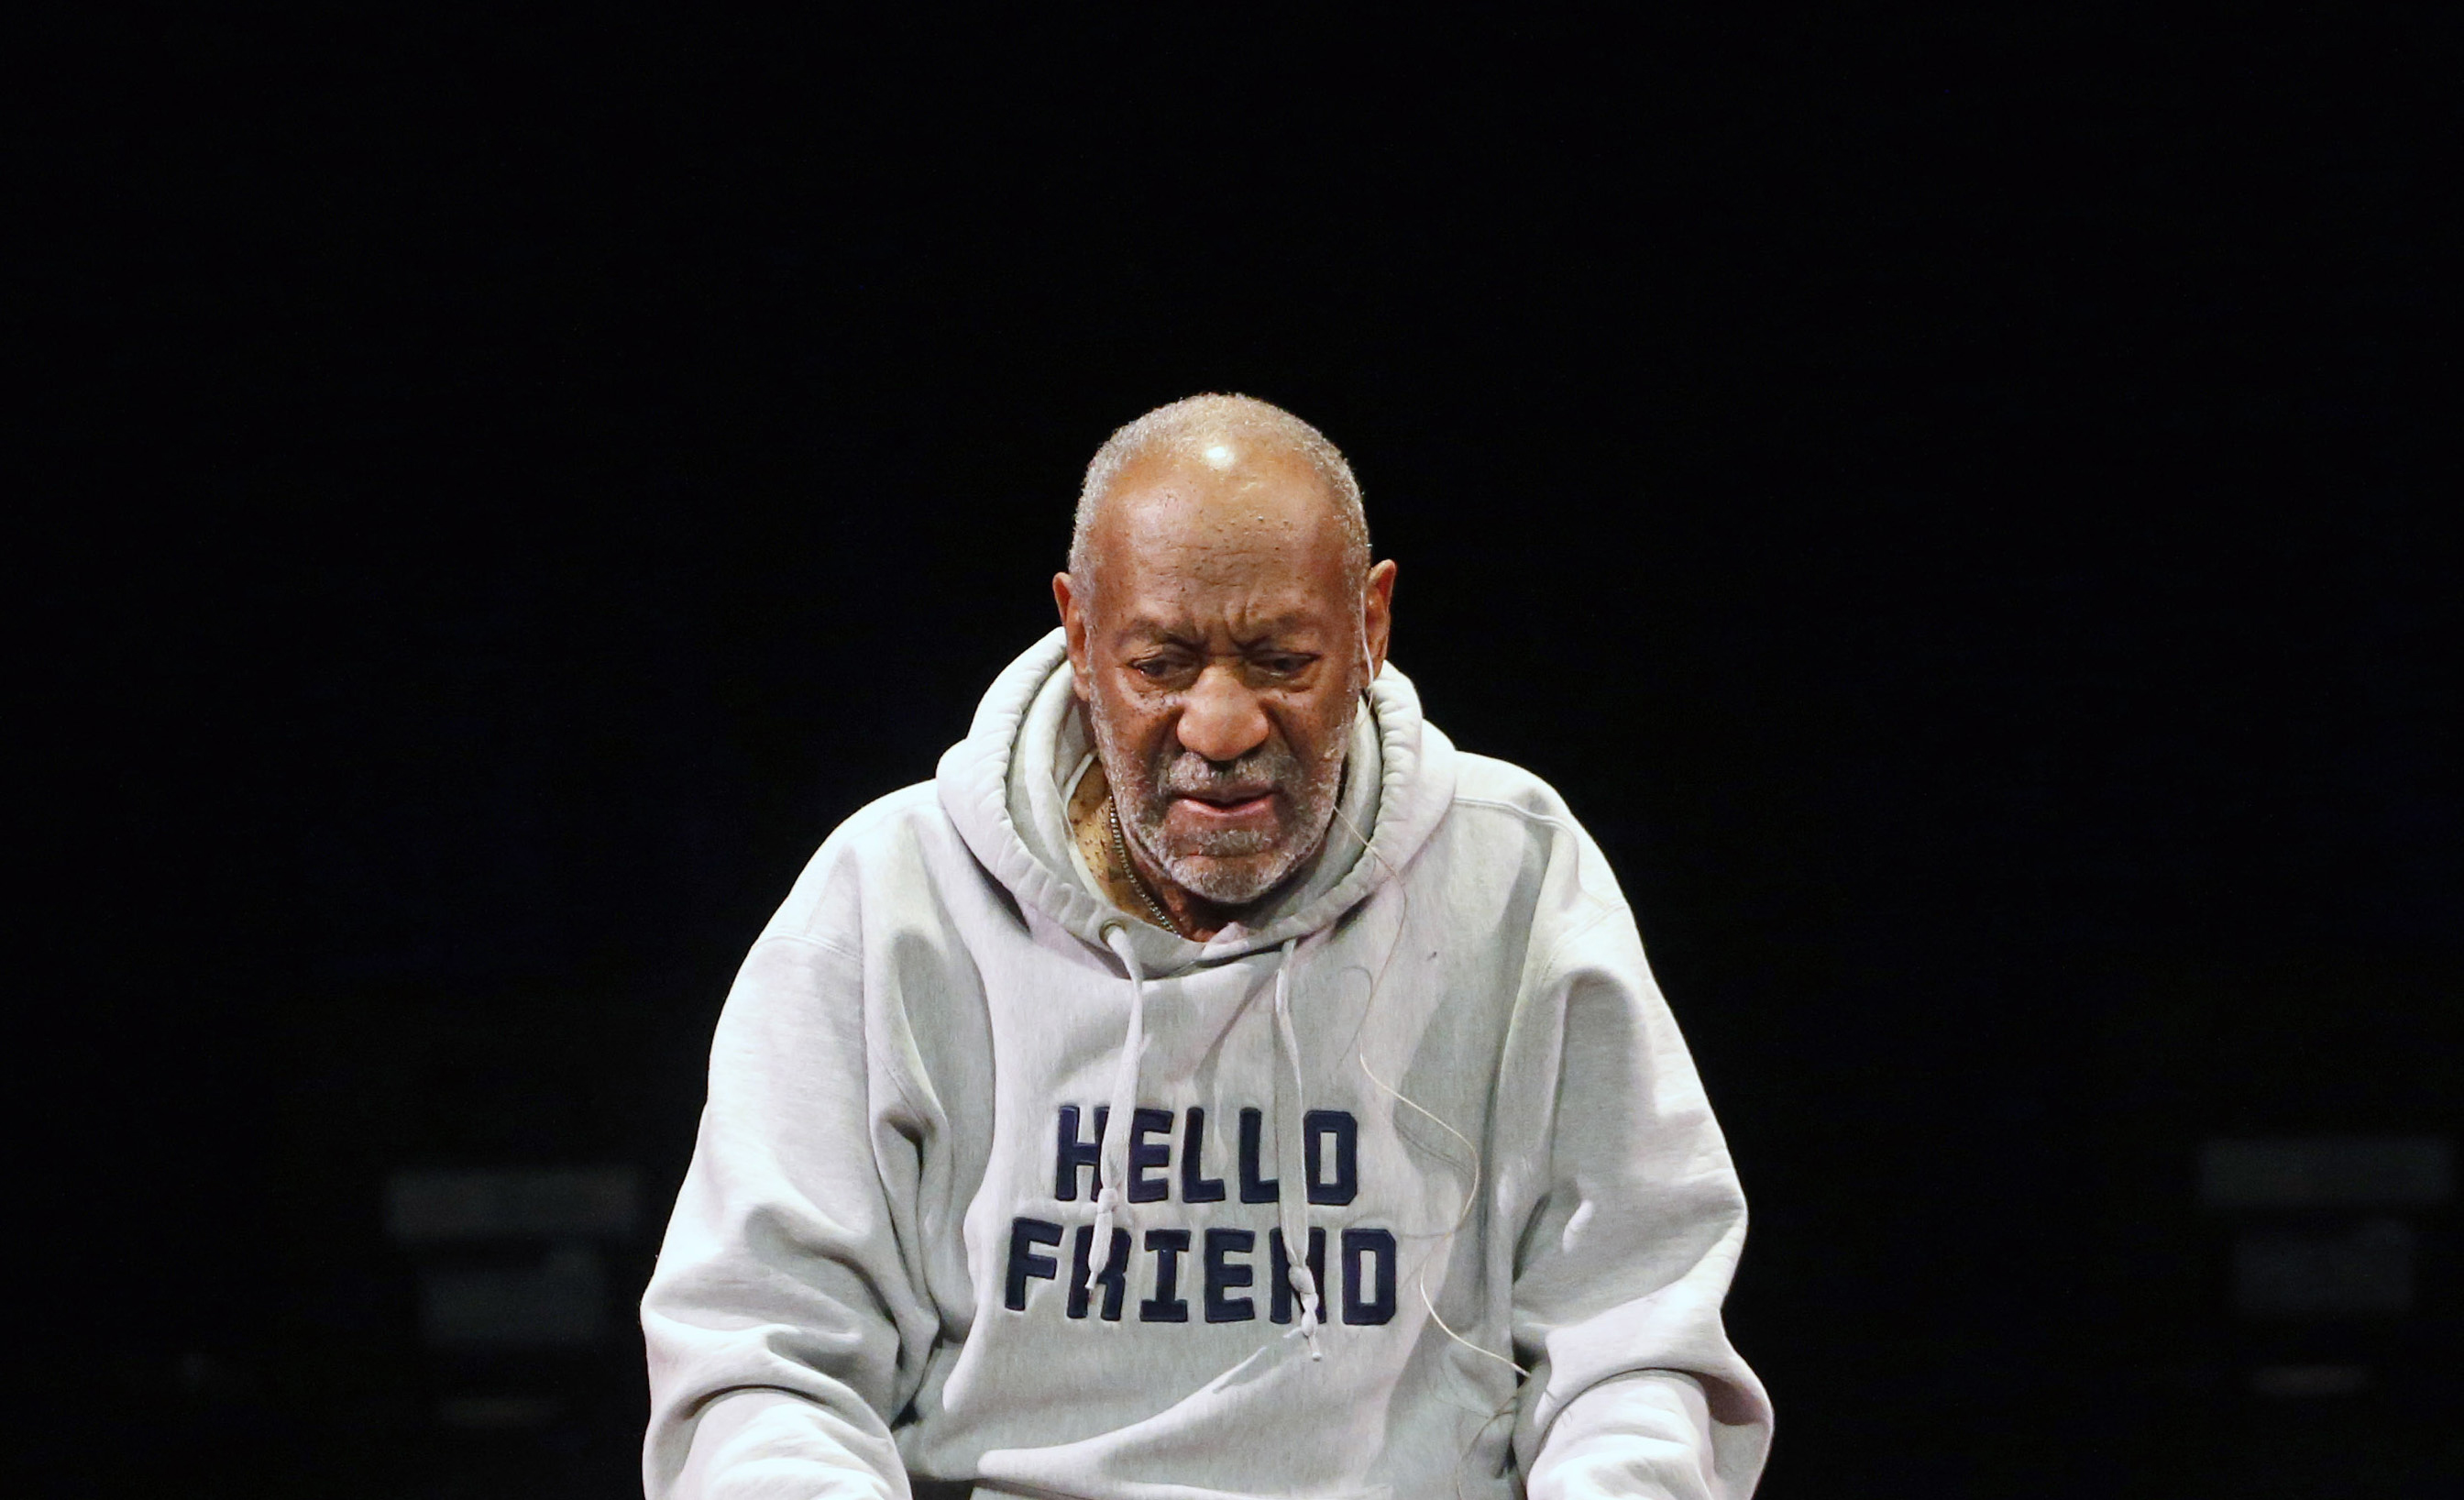 Comedian Bill Cosby performs at the Buell Theater in Denver, on Jan. 17, 2015.